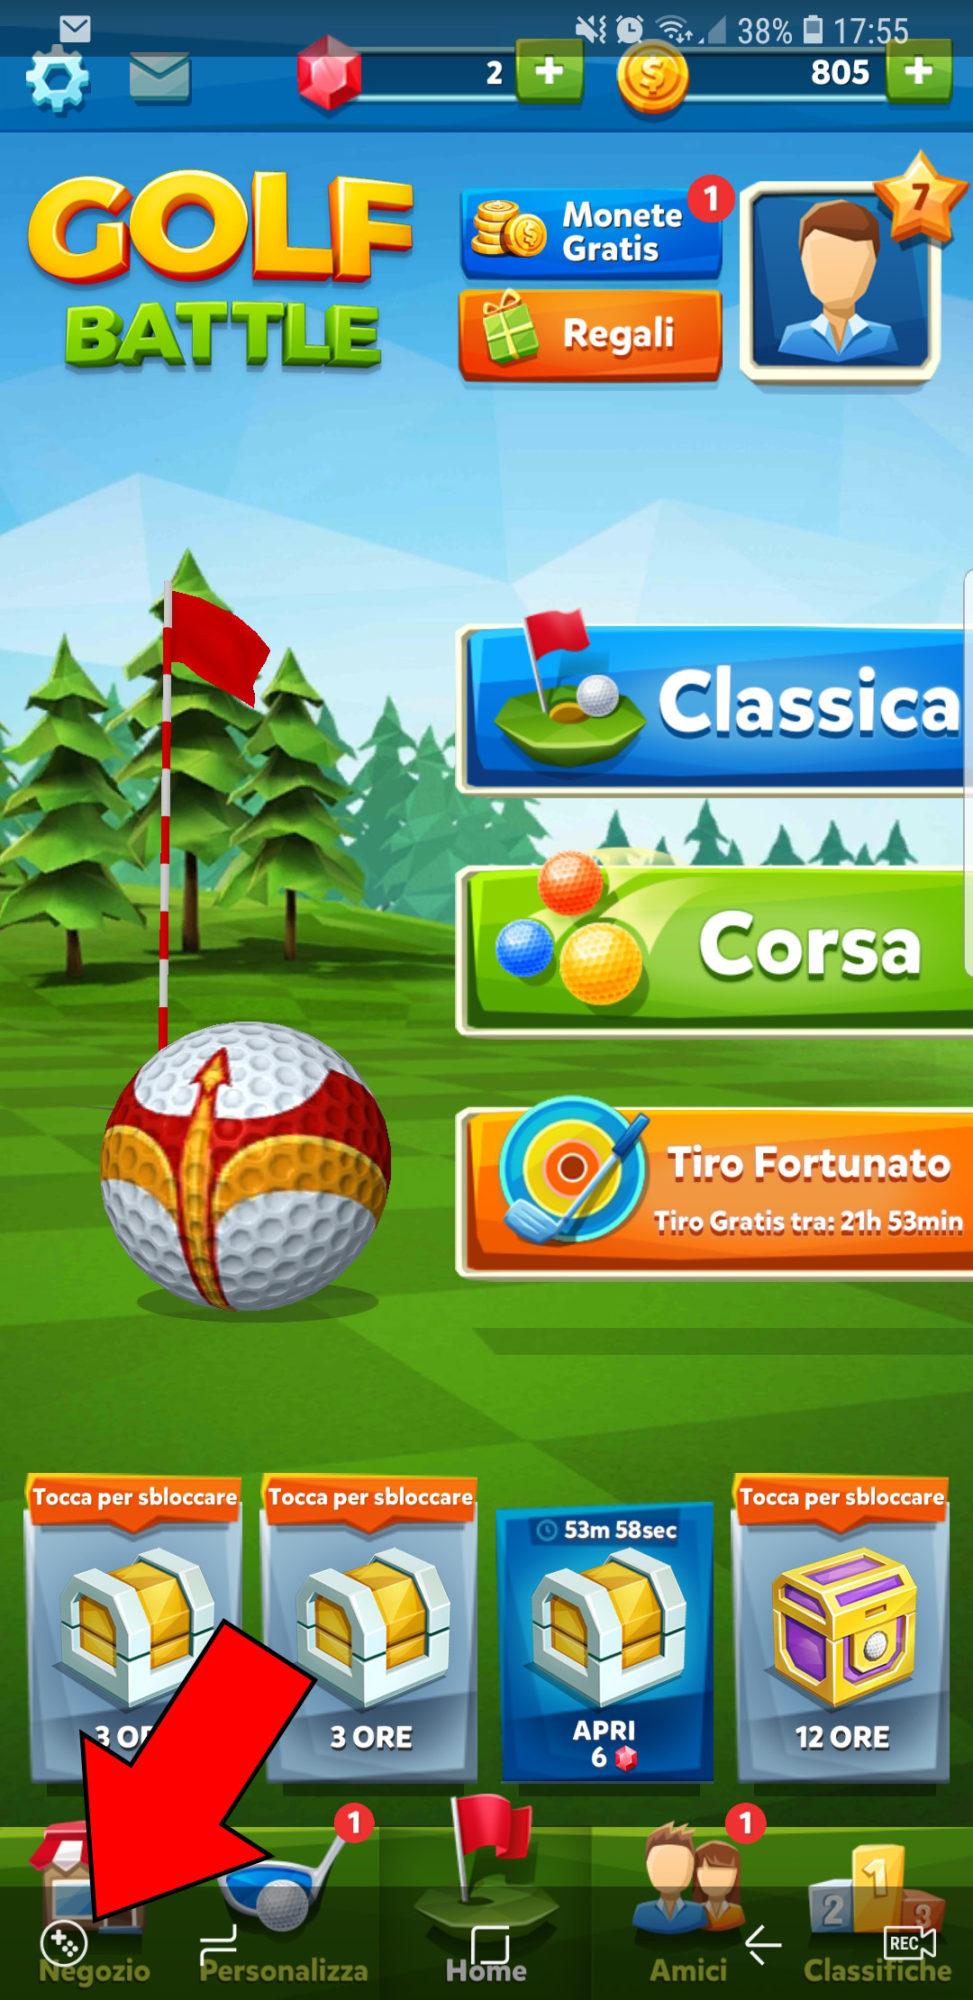 Registrare_Gameplay_Android_001